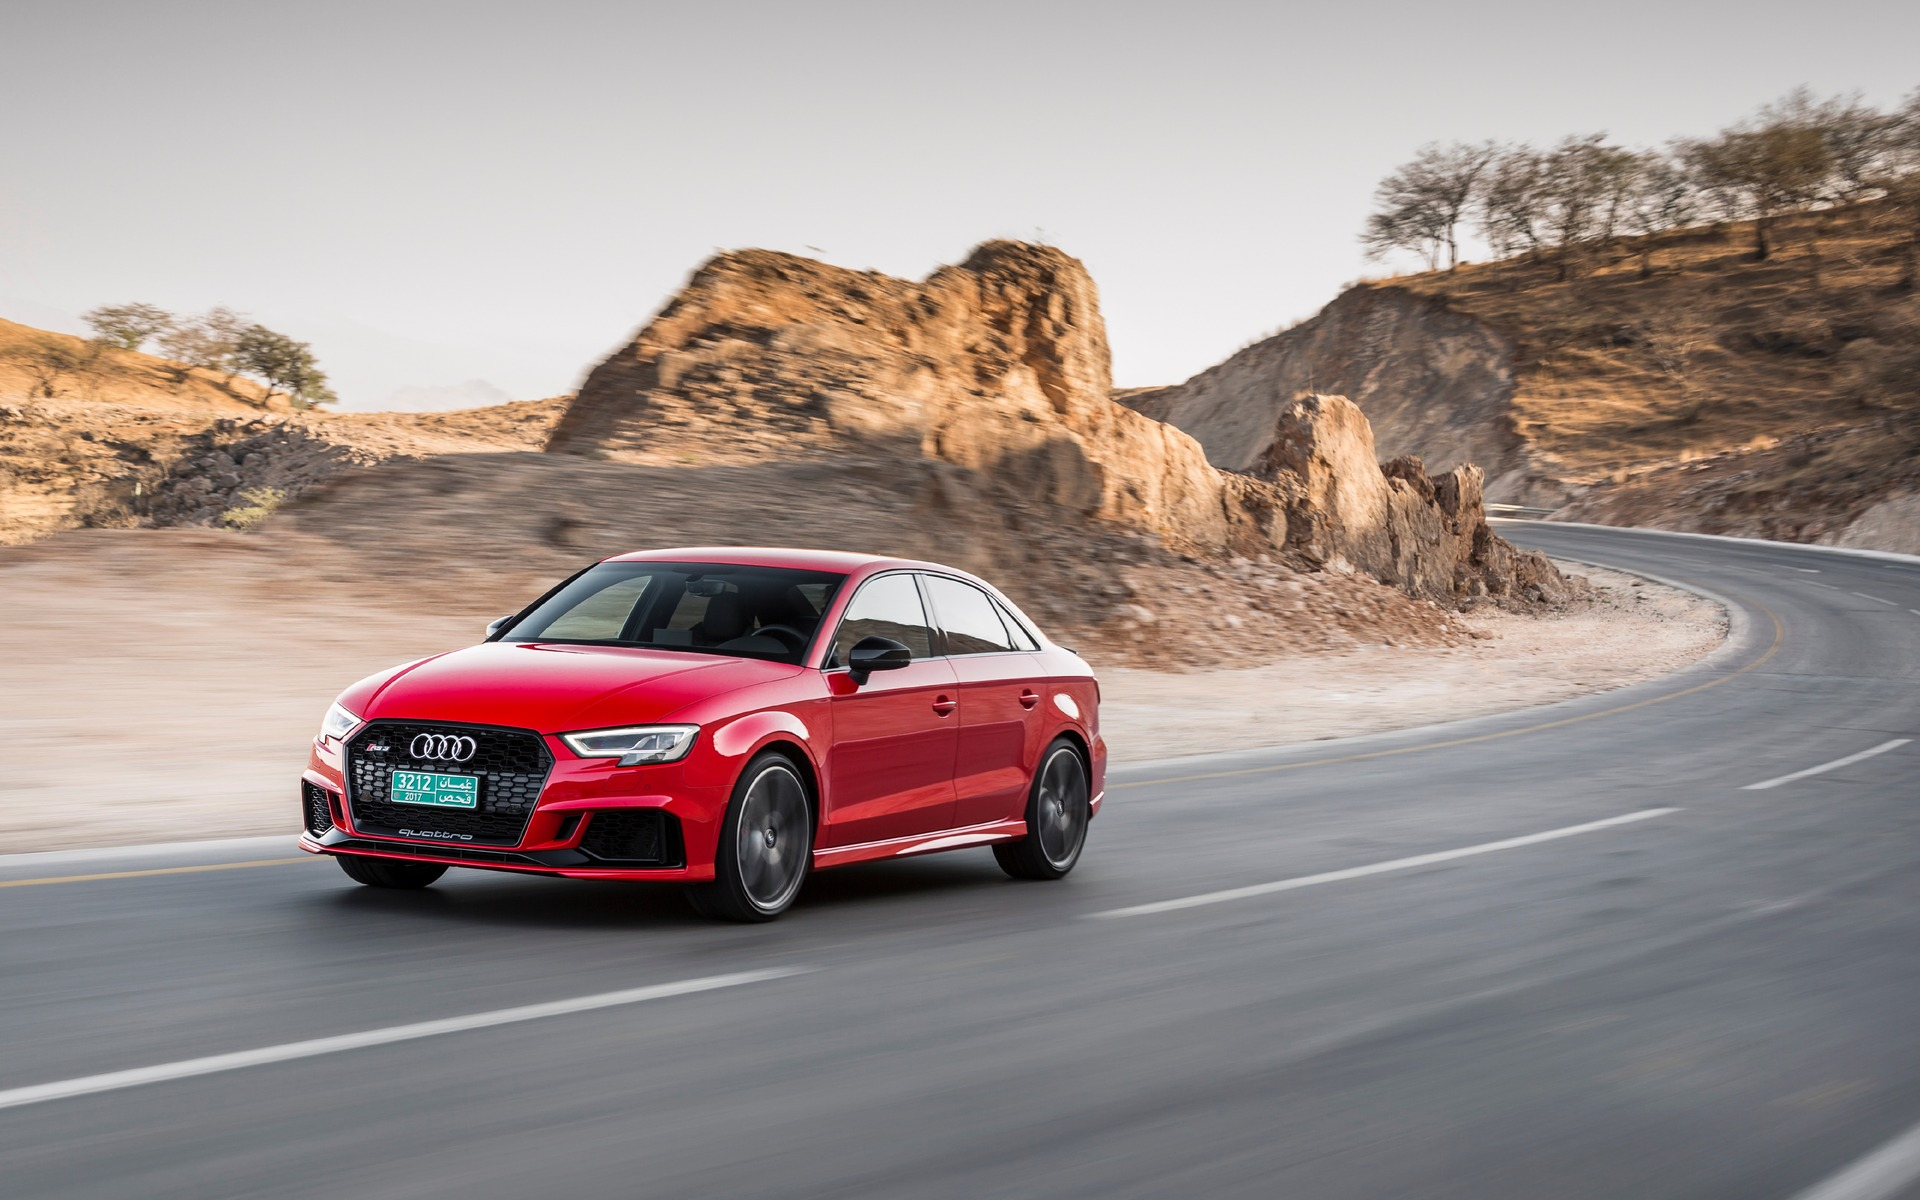 <p>2018 Audi RS 3 - Coming to Canada in the summer of 2017.</p>